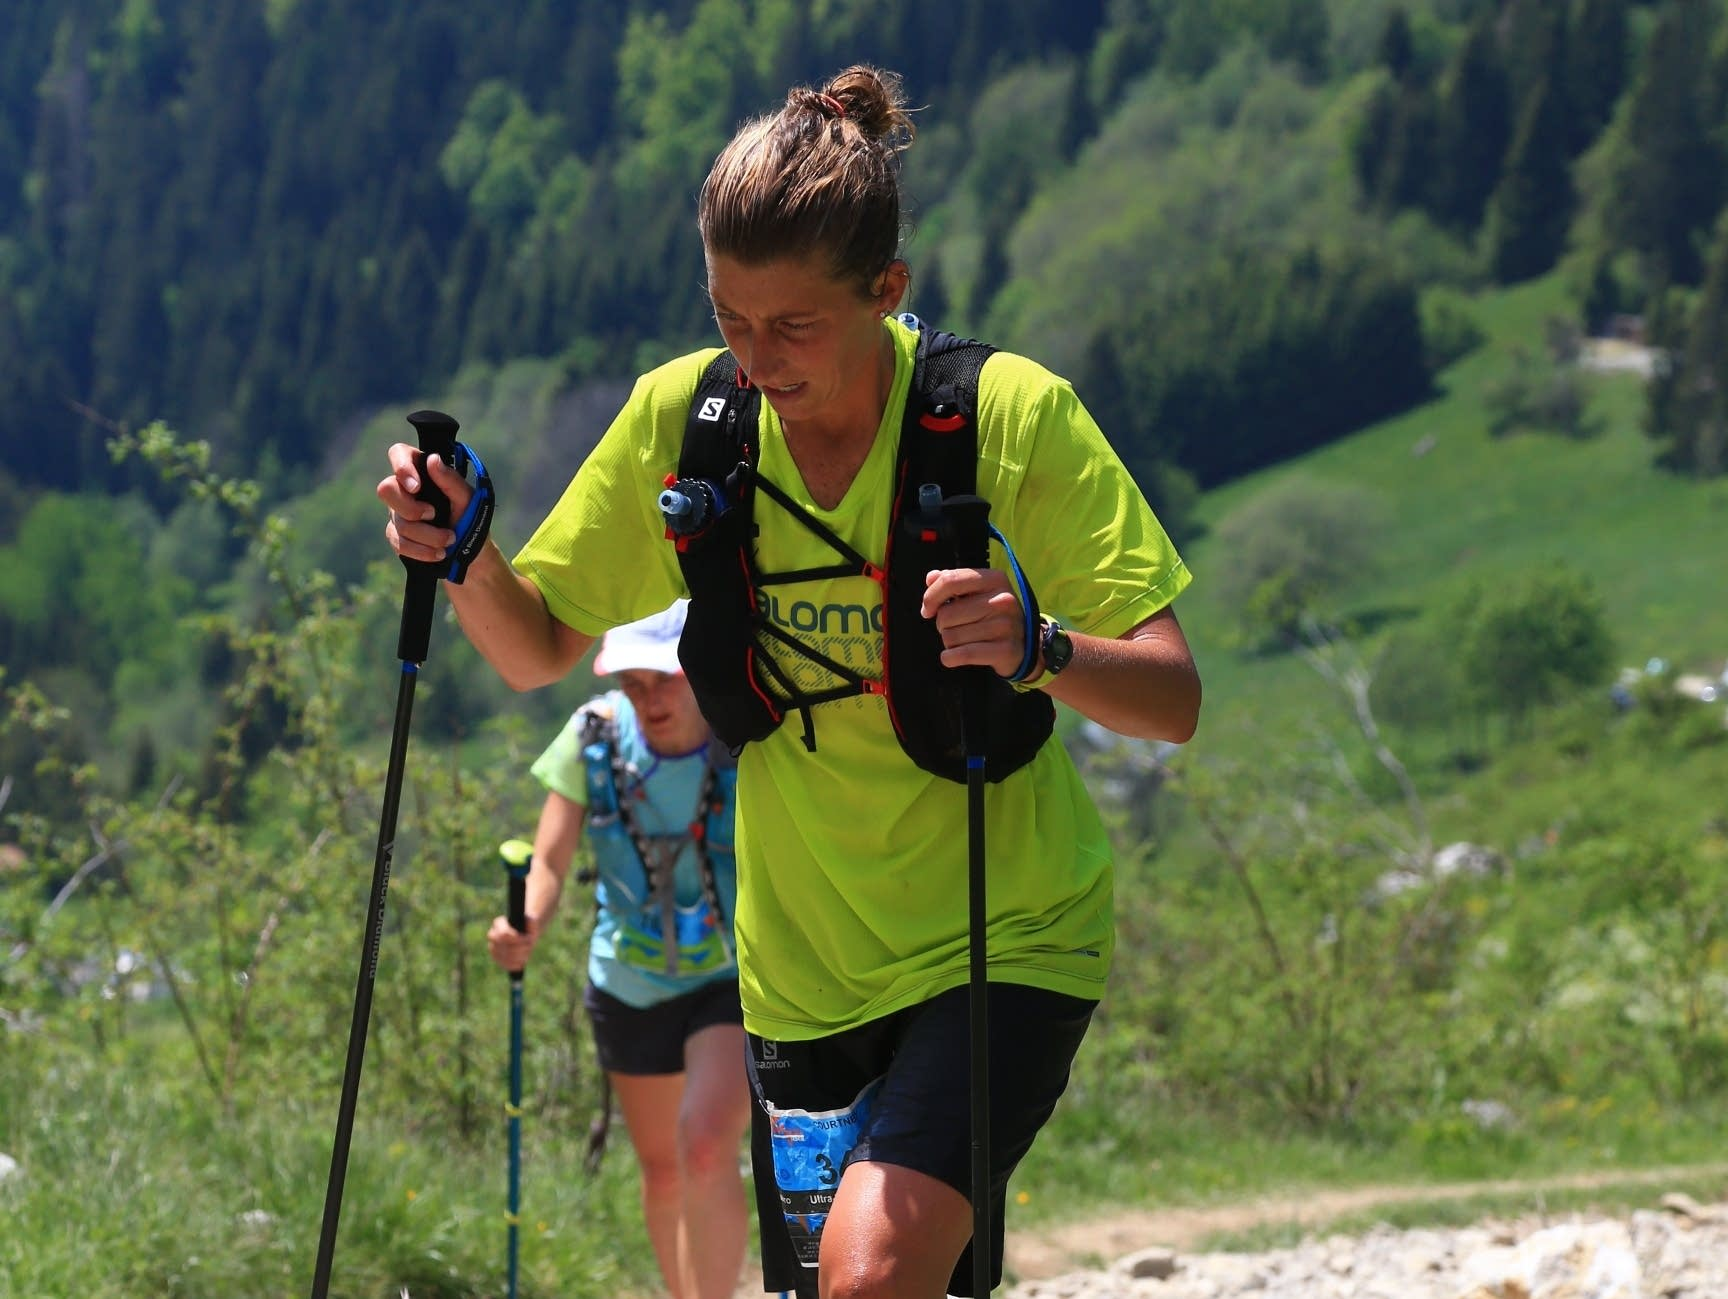 Courtney Dauwalter racing in Annecy, France at the Maxi Race 110 km.